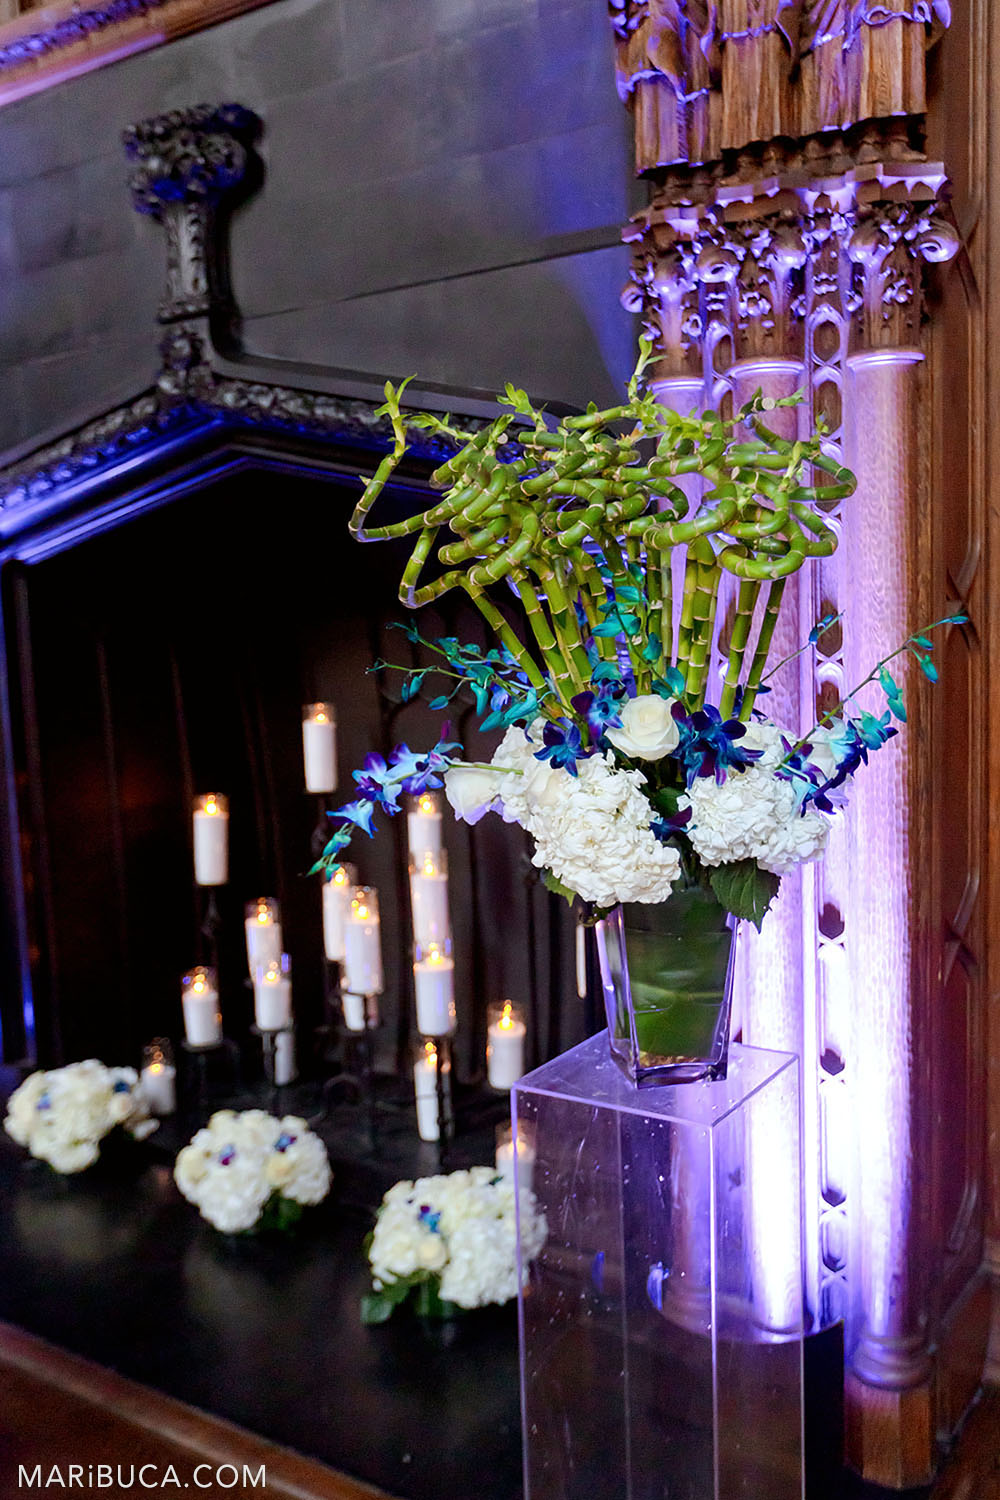 Decoration in the Great Hall, Kohl Mansion such as bouquet flower, burning candles